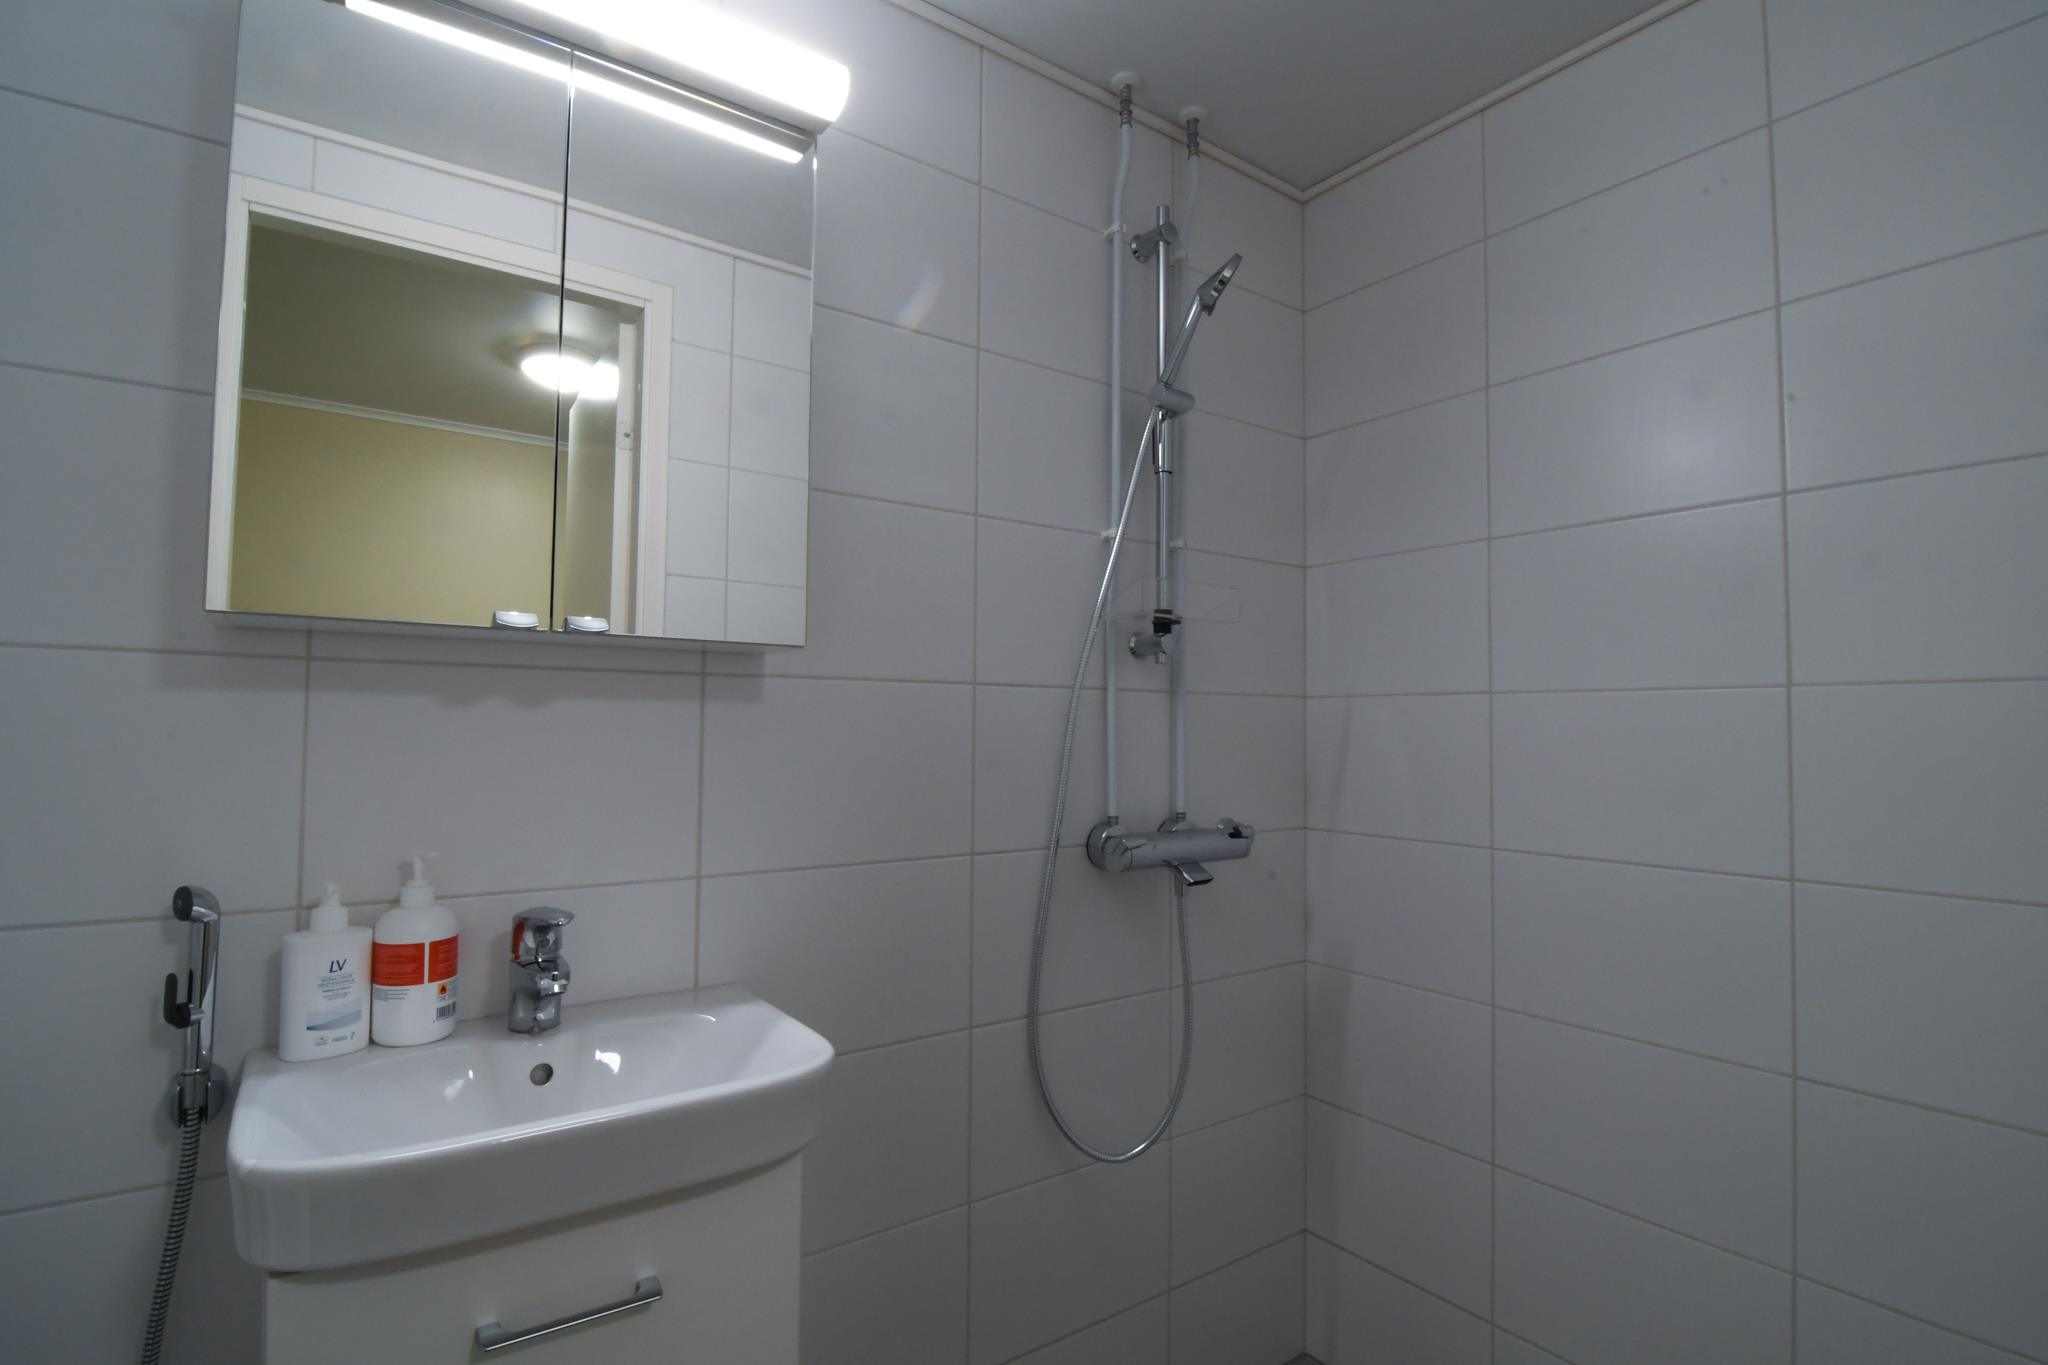 room5-bathroom-001.jpg